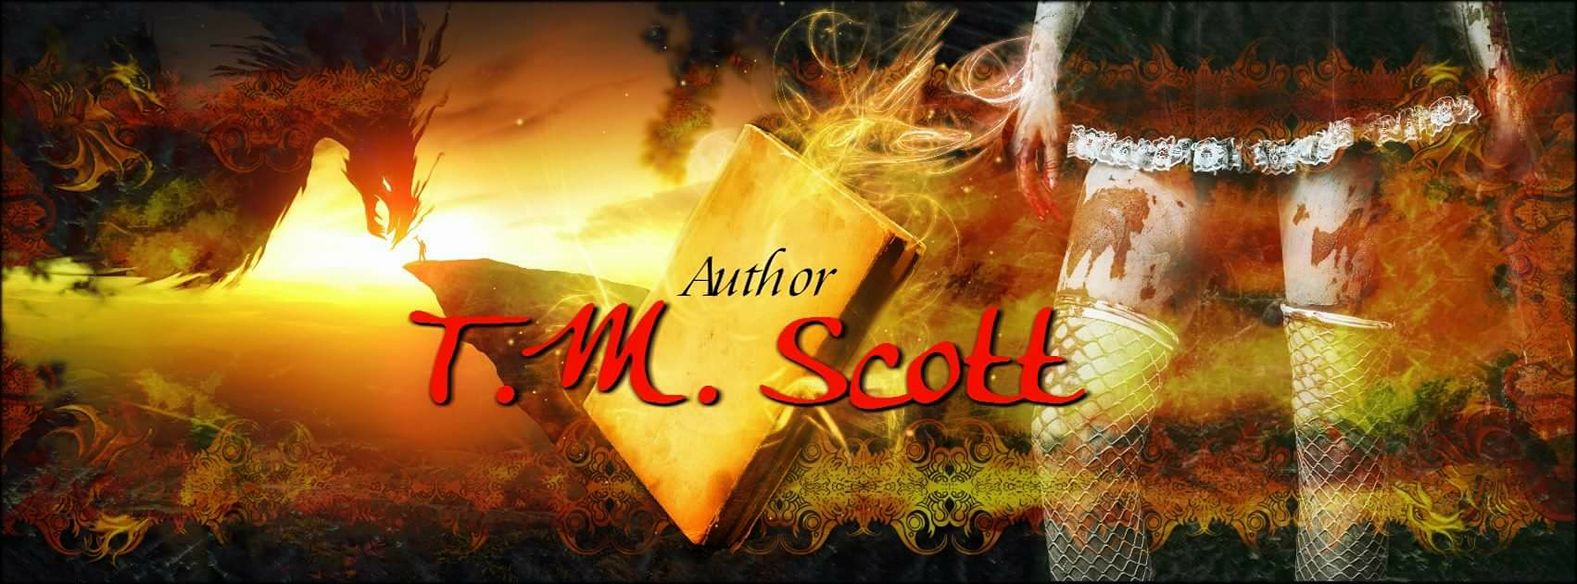 Author T. M. Scott